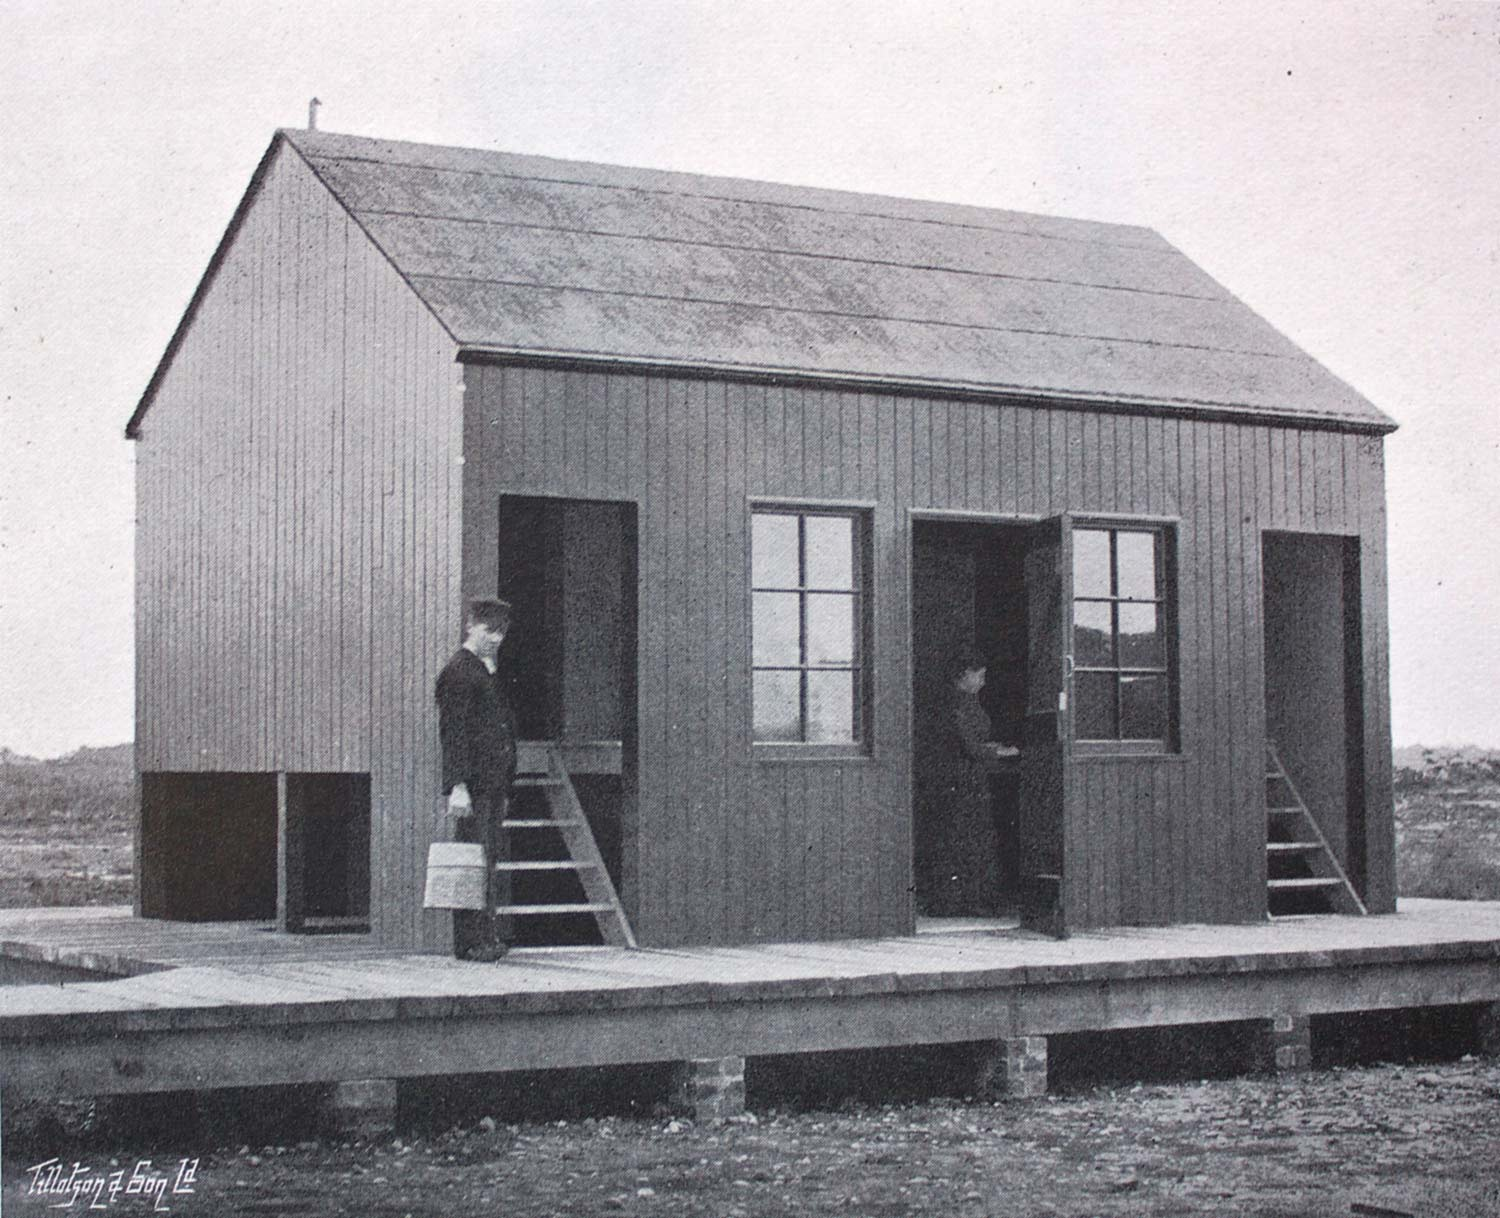 Packing shed, supplied by rail